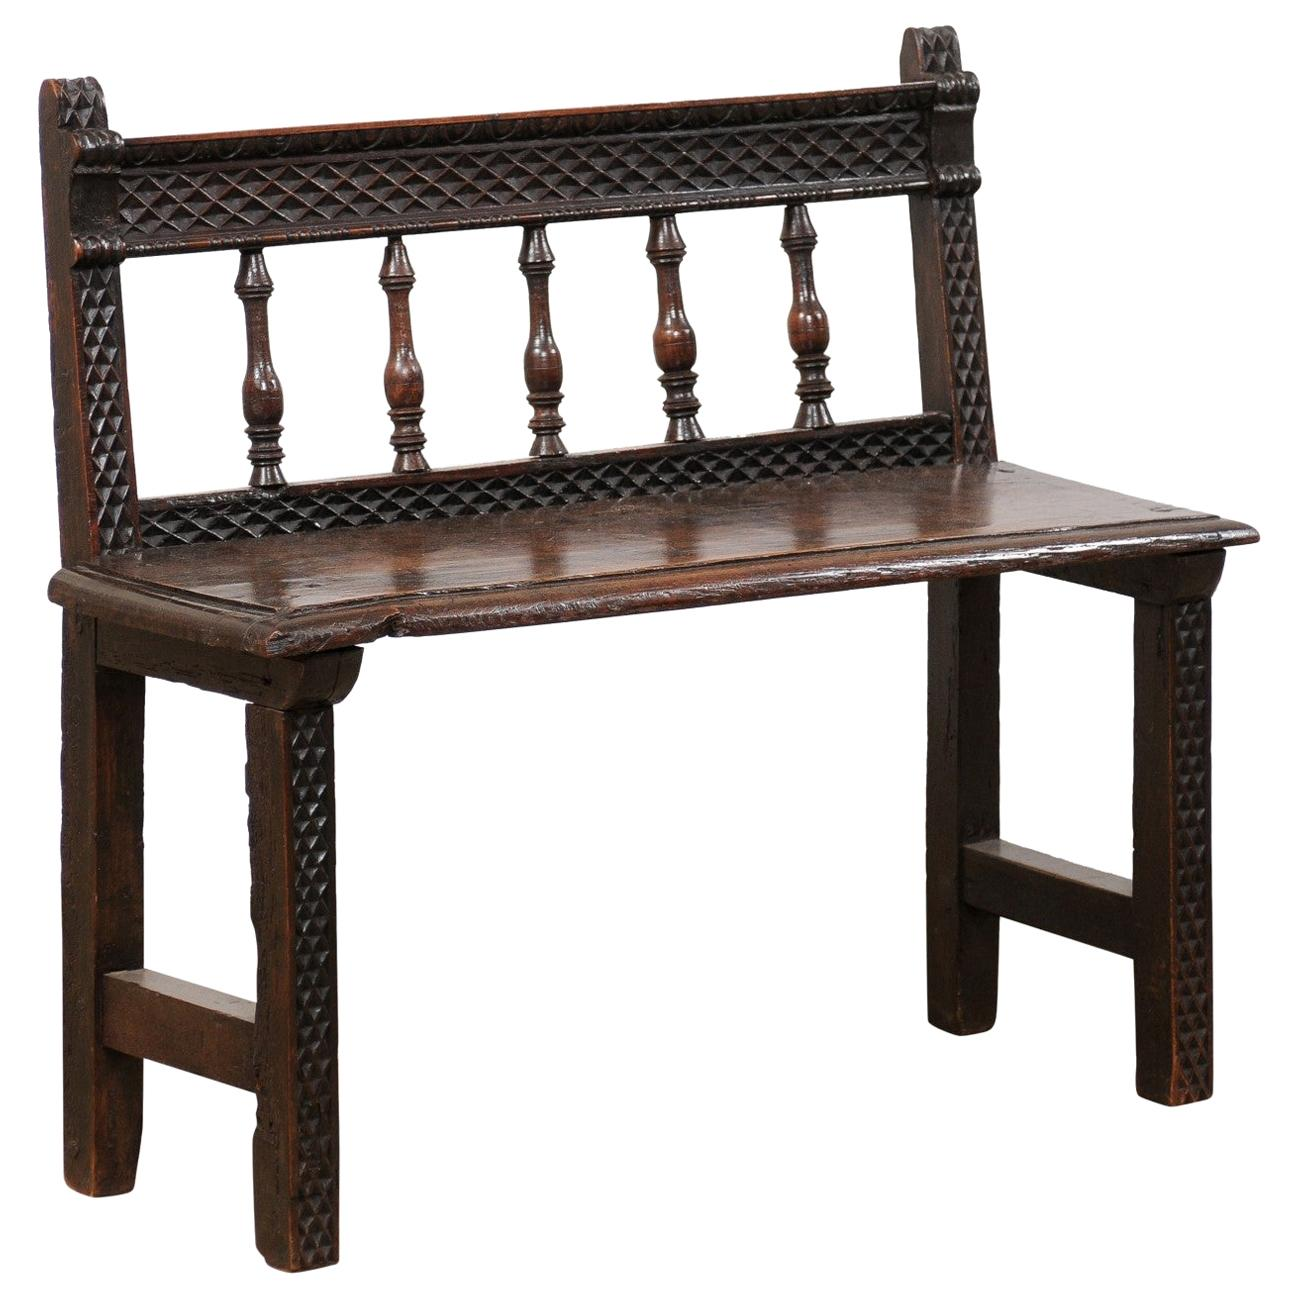 18th Century Spanish Spindle Back Carved Wood Bench, Cute